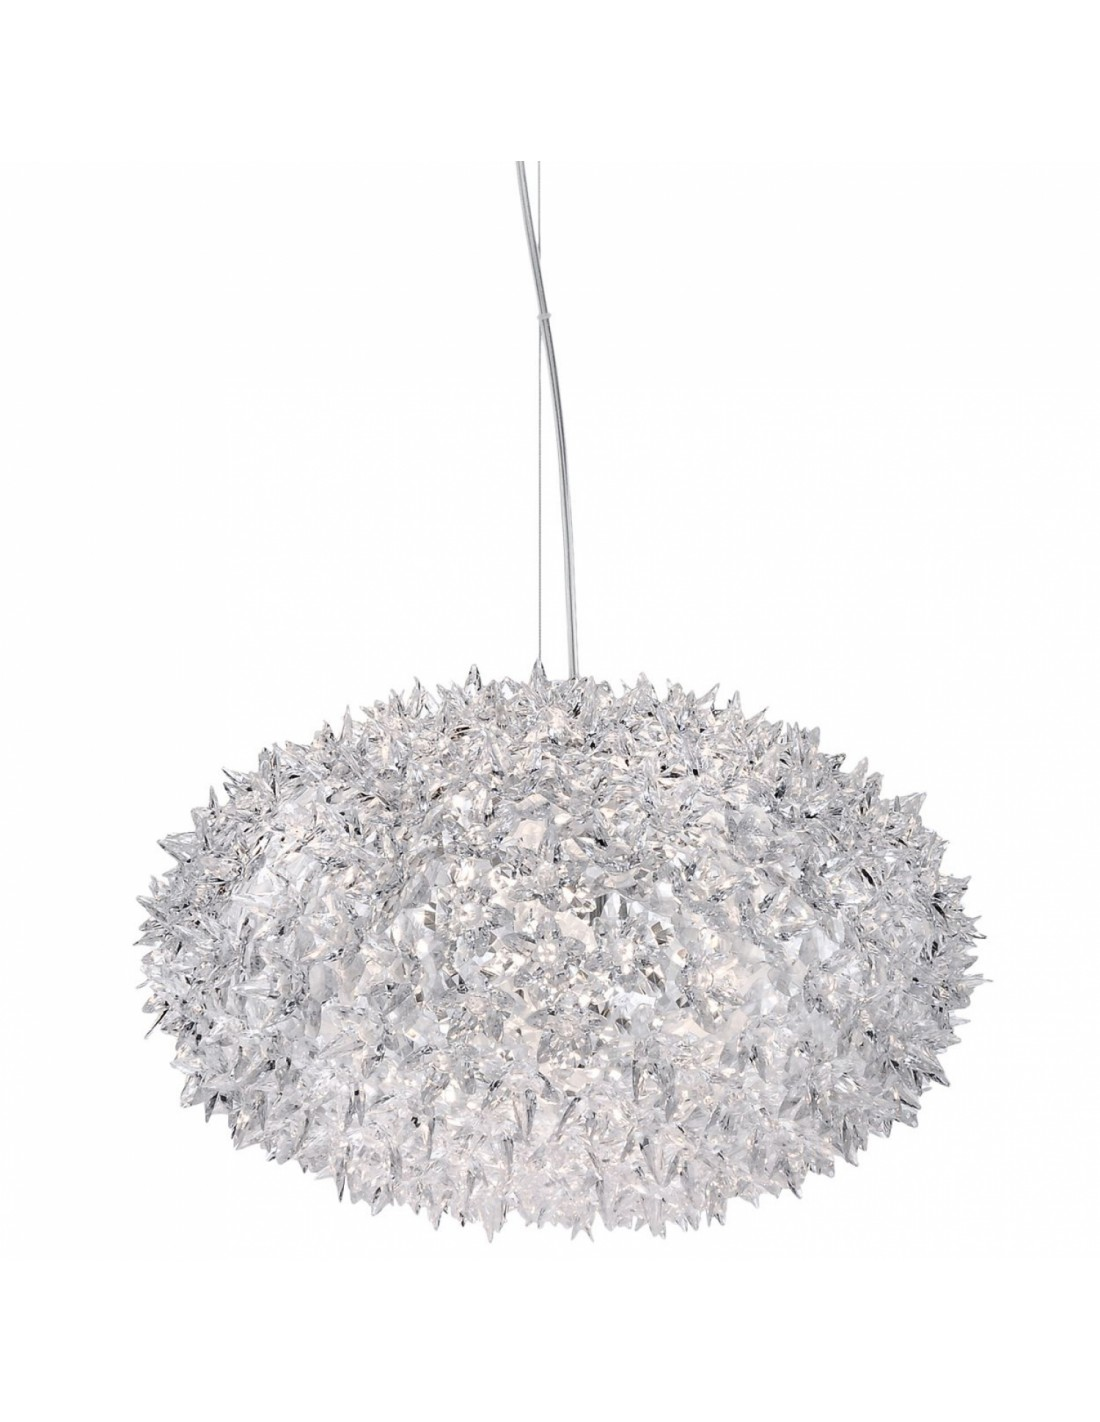 Suspension Bloom Ovale (ø 53 cm) transparent pour la marque Kartell